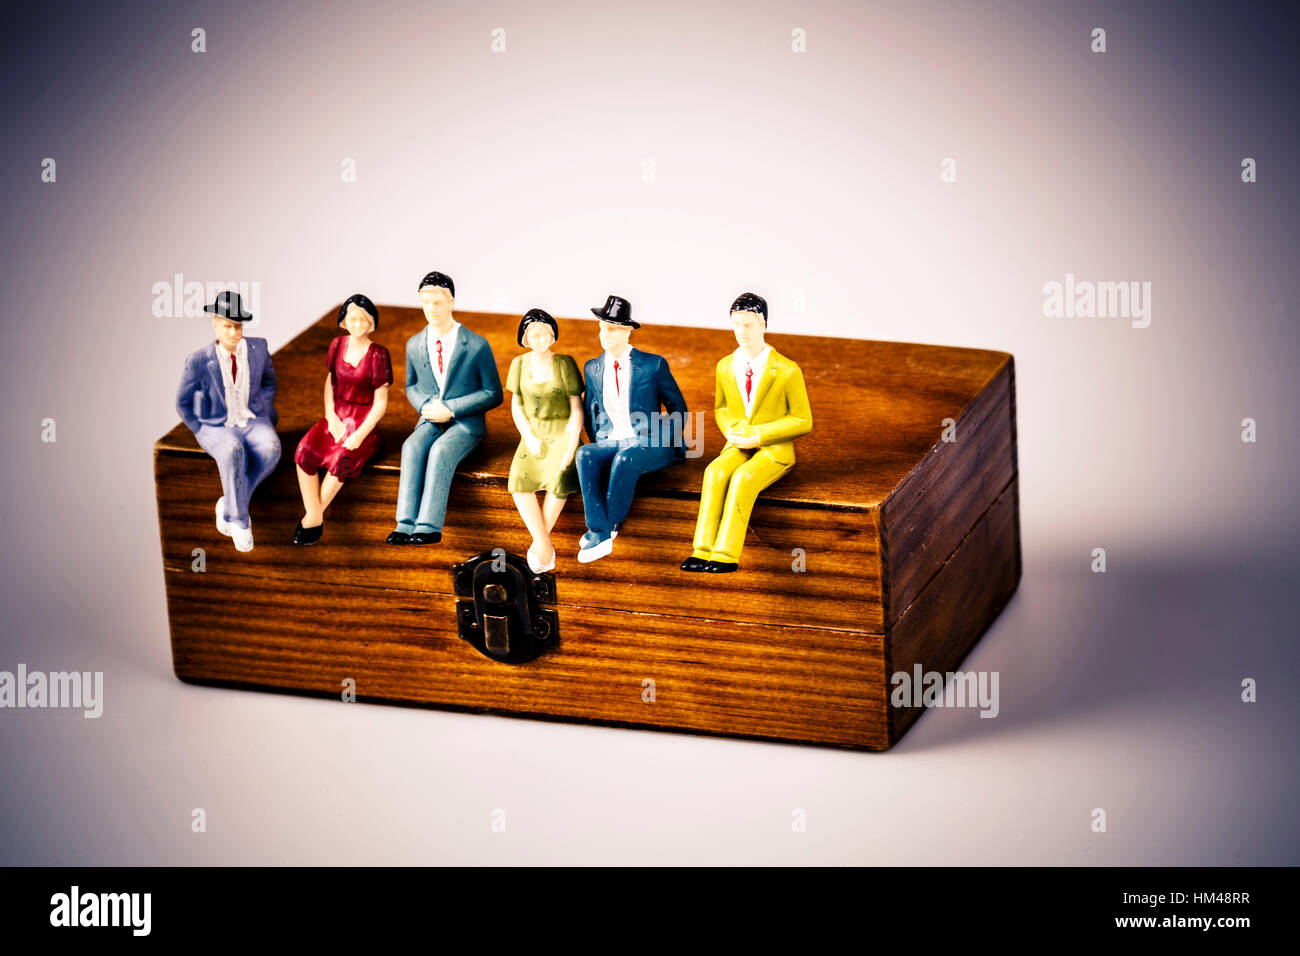 toy models of people sitting on the wooden box on white - Stock Image